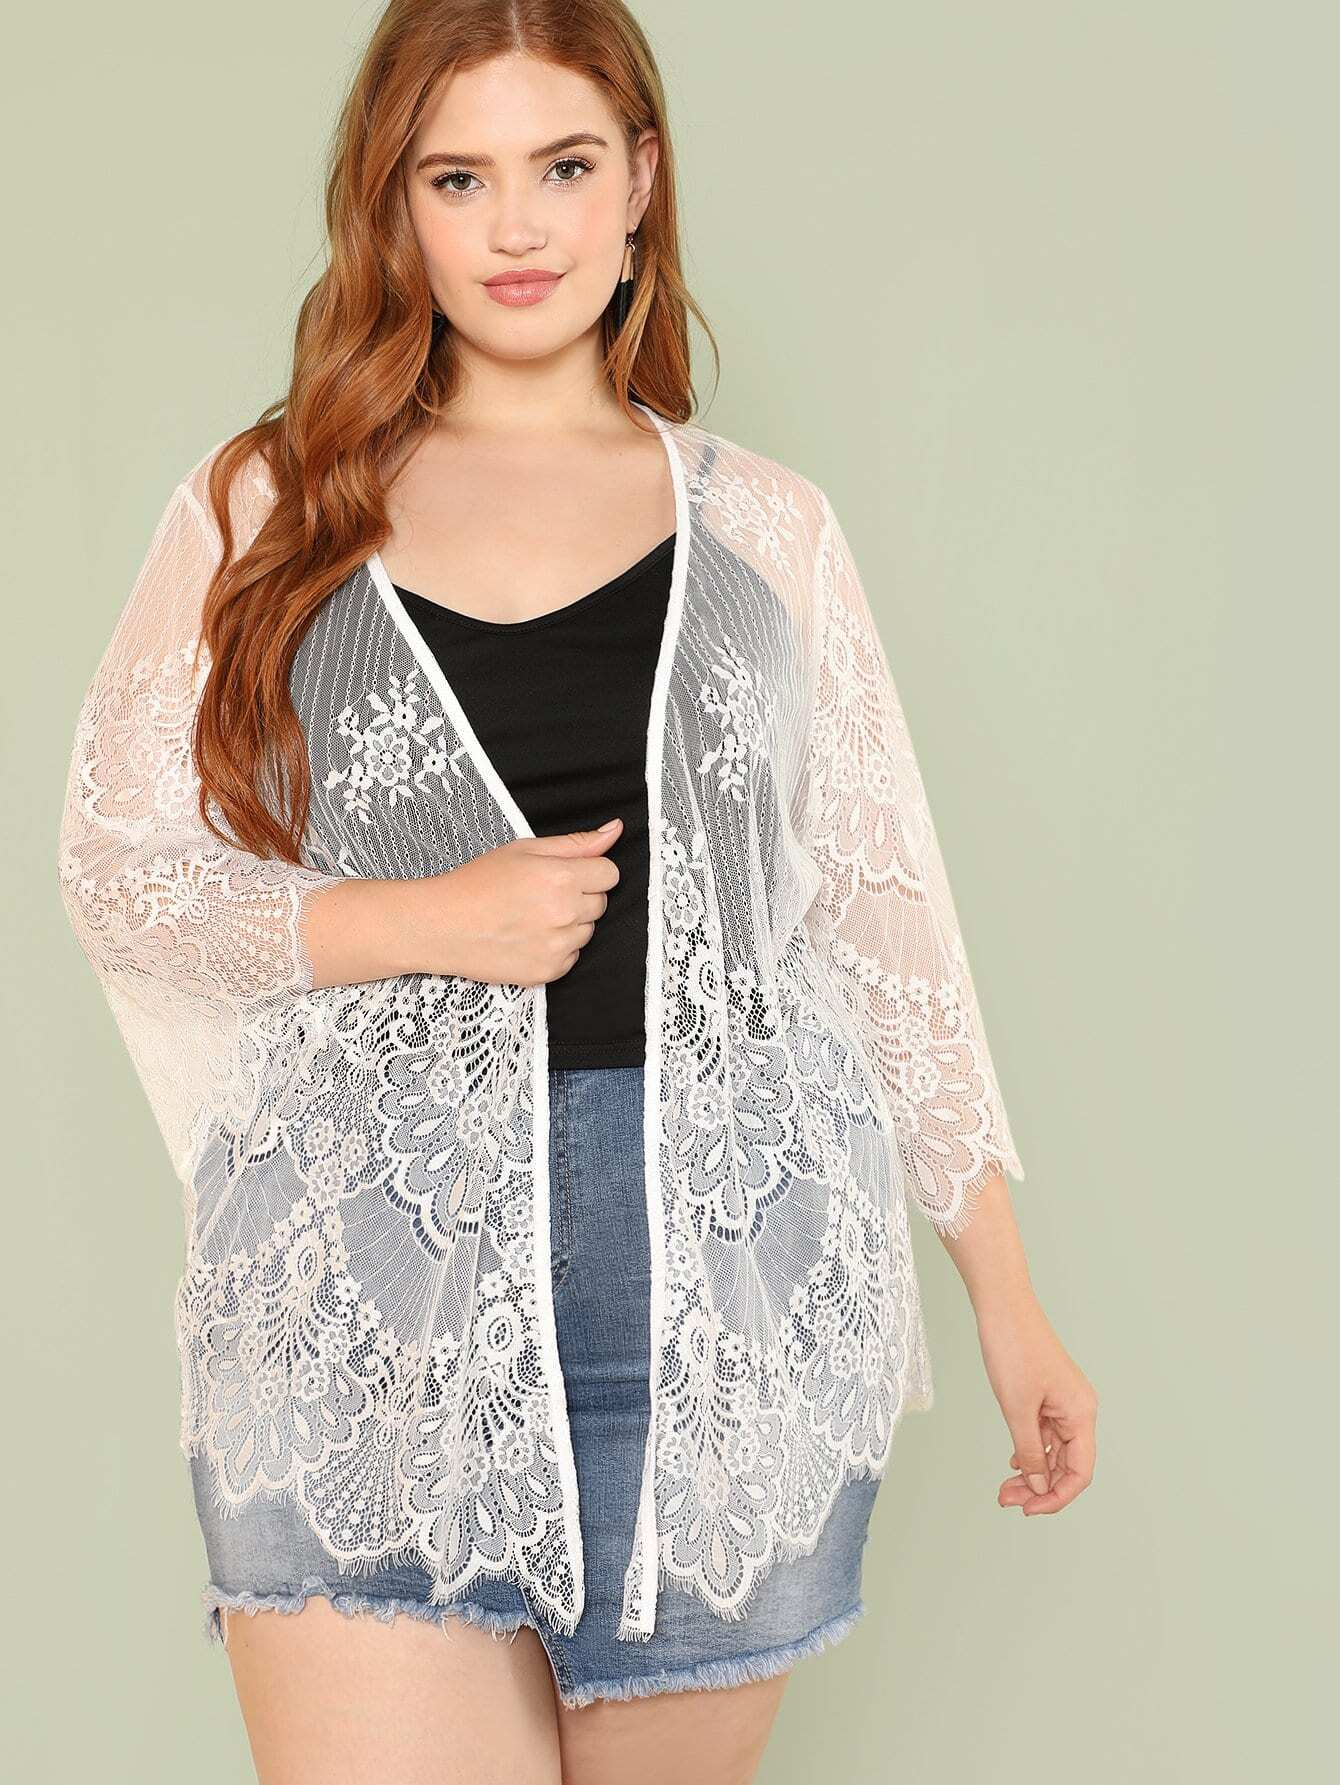 Sheer Floral Lace Kimono floral lace sheer top